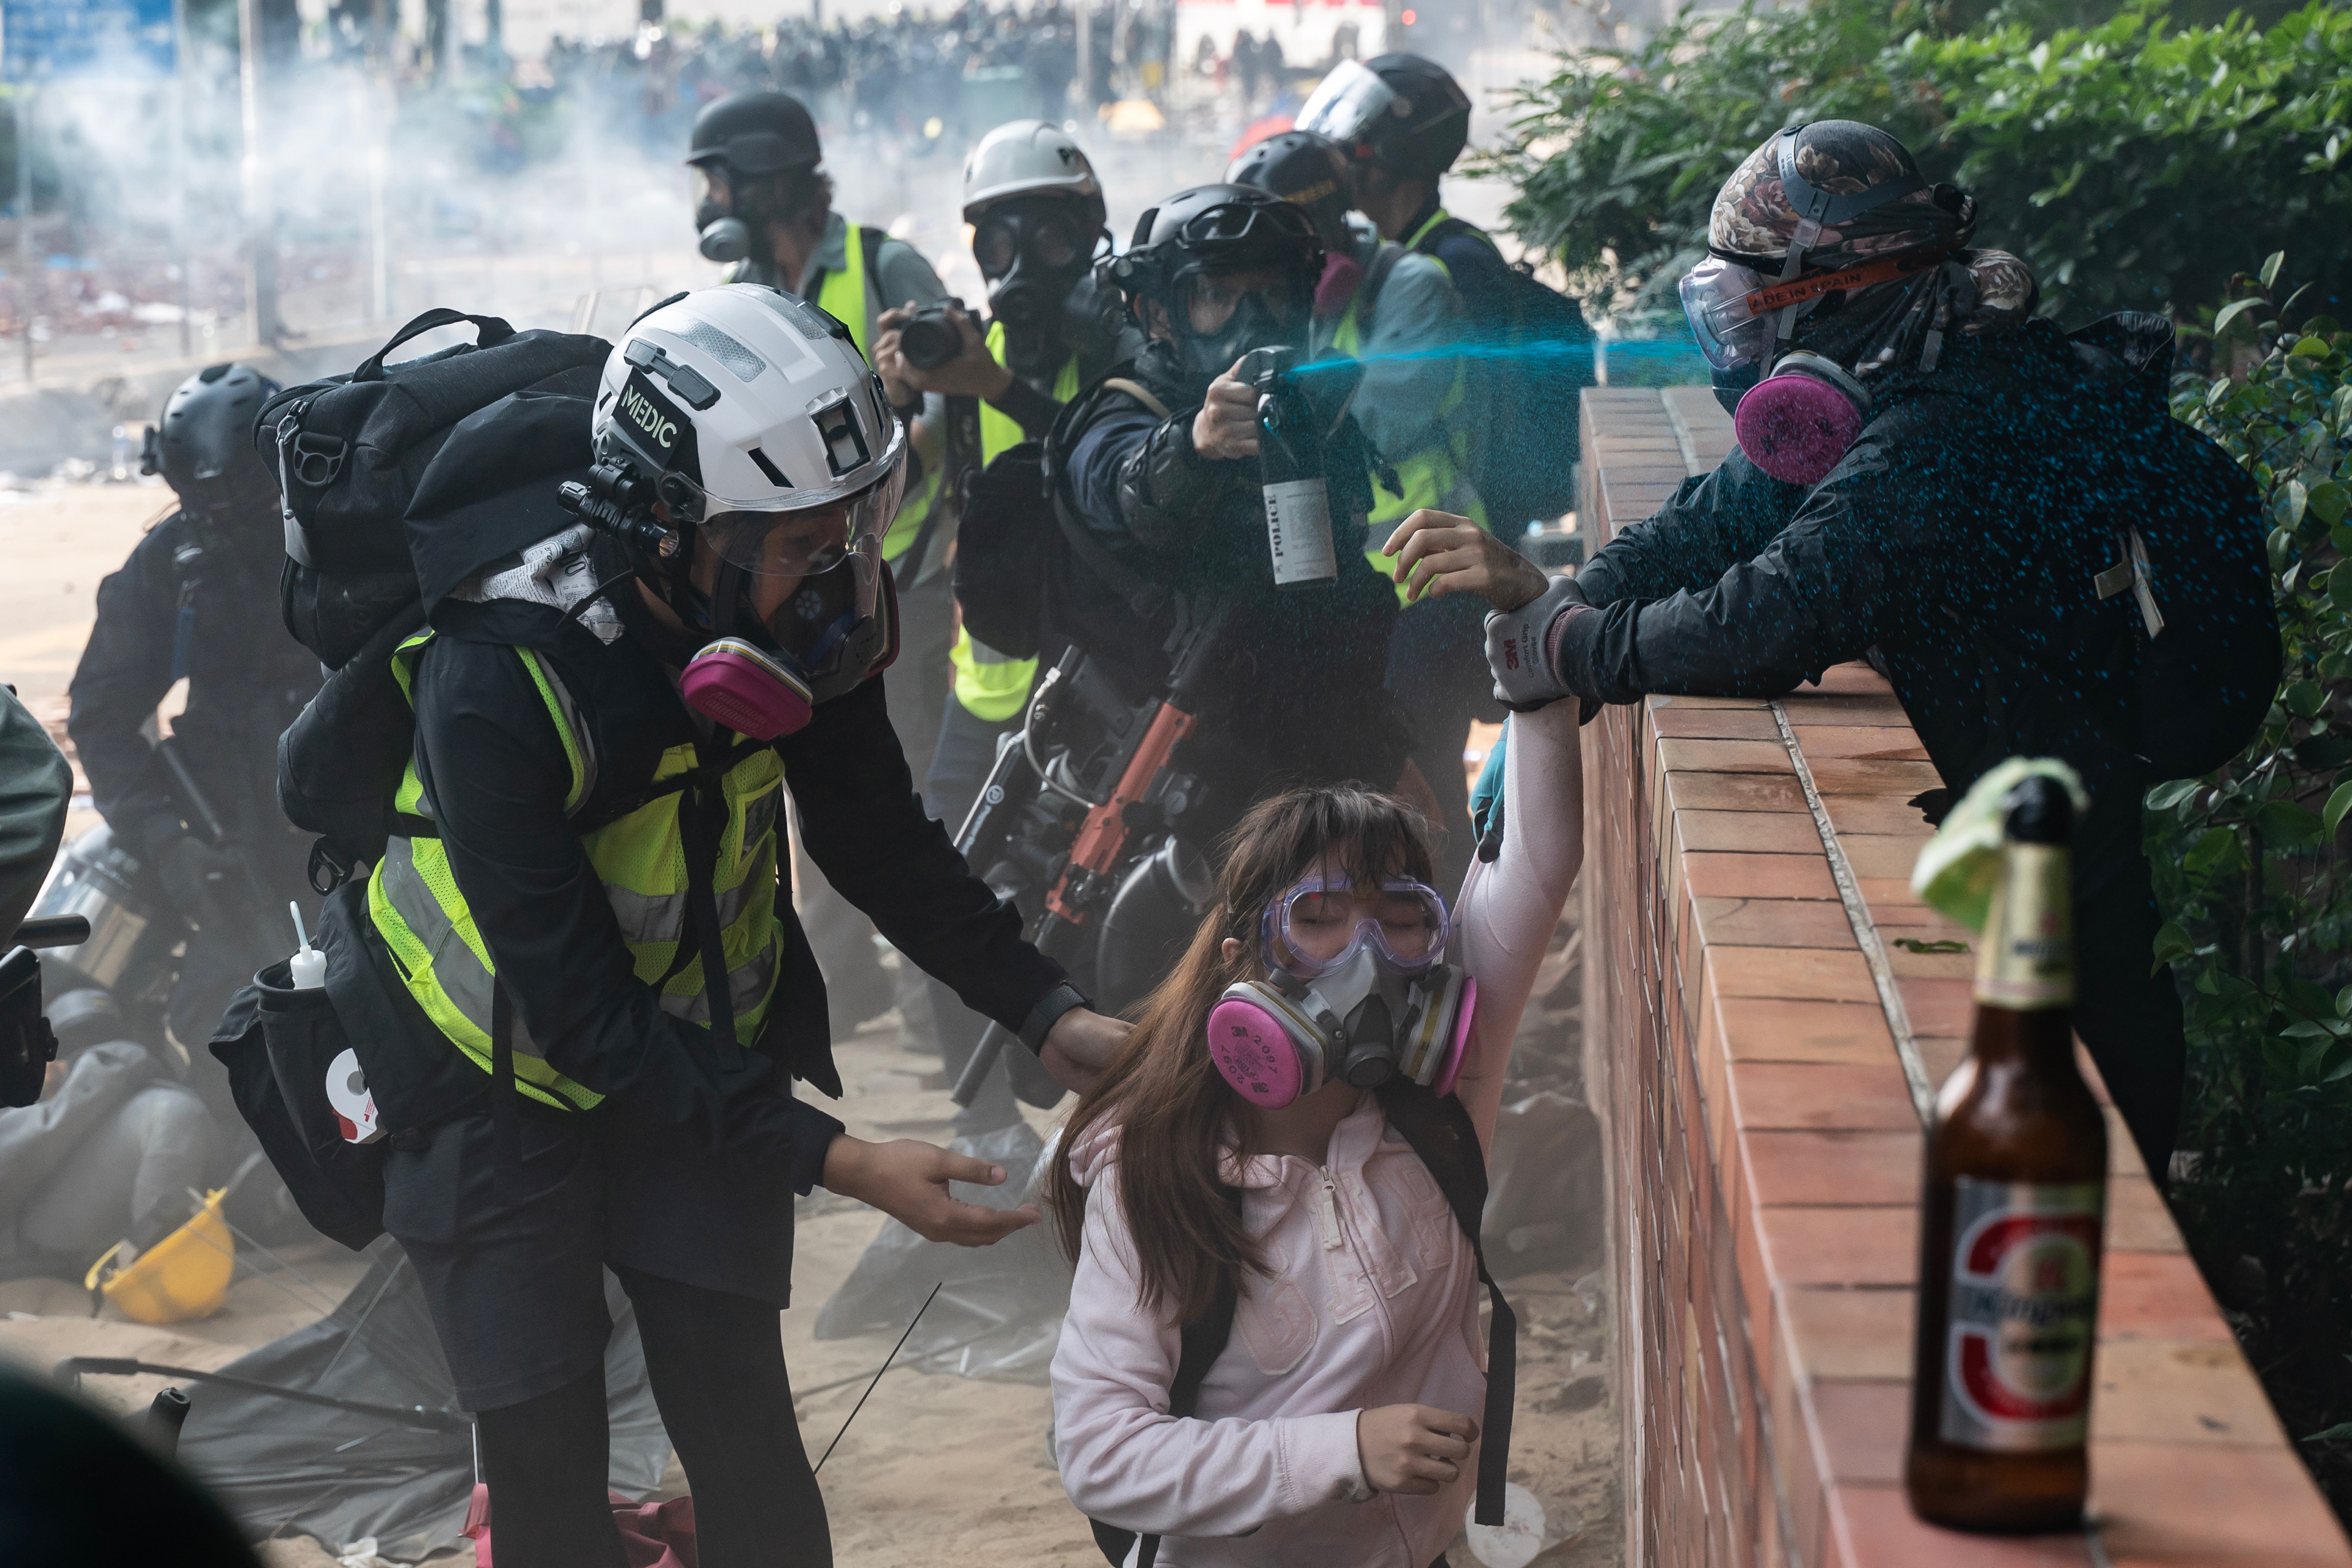 Police officer sprays protesters with identifying blue dye as they try to flee after occupying Hong Kong Polytechnic University campus on Monday